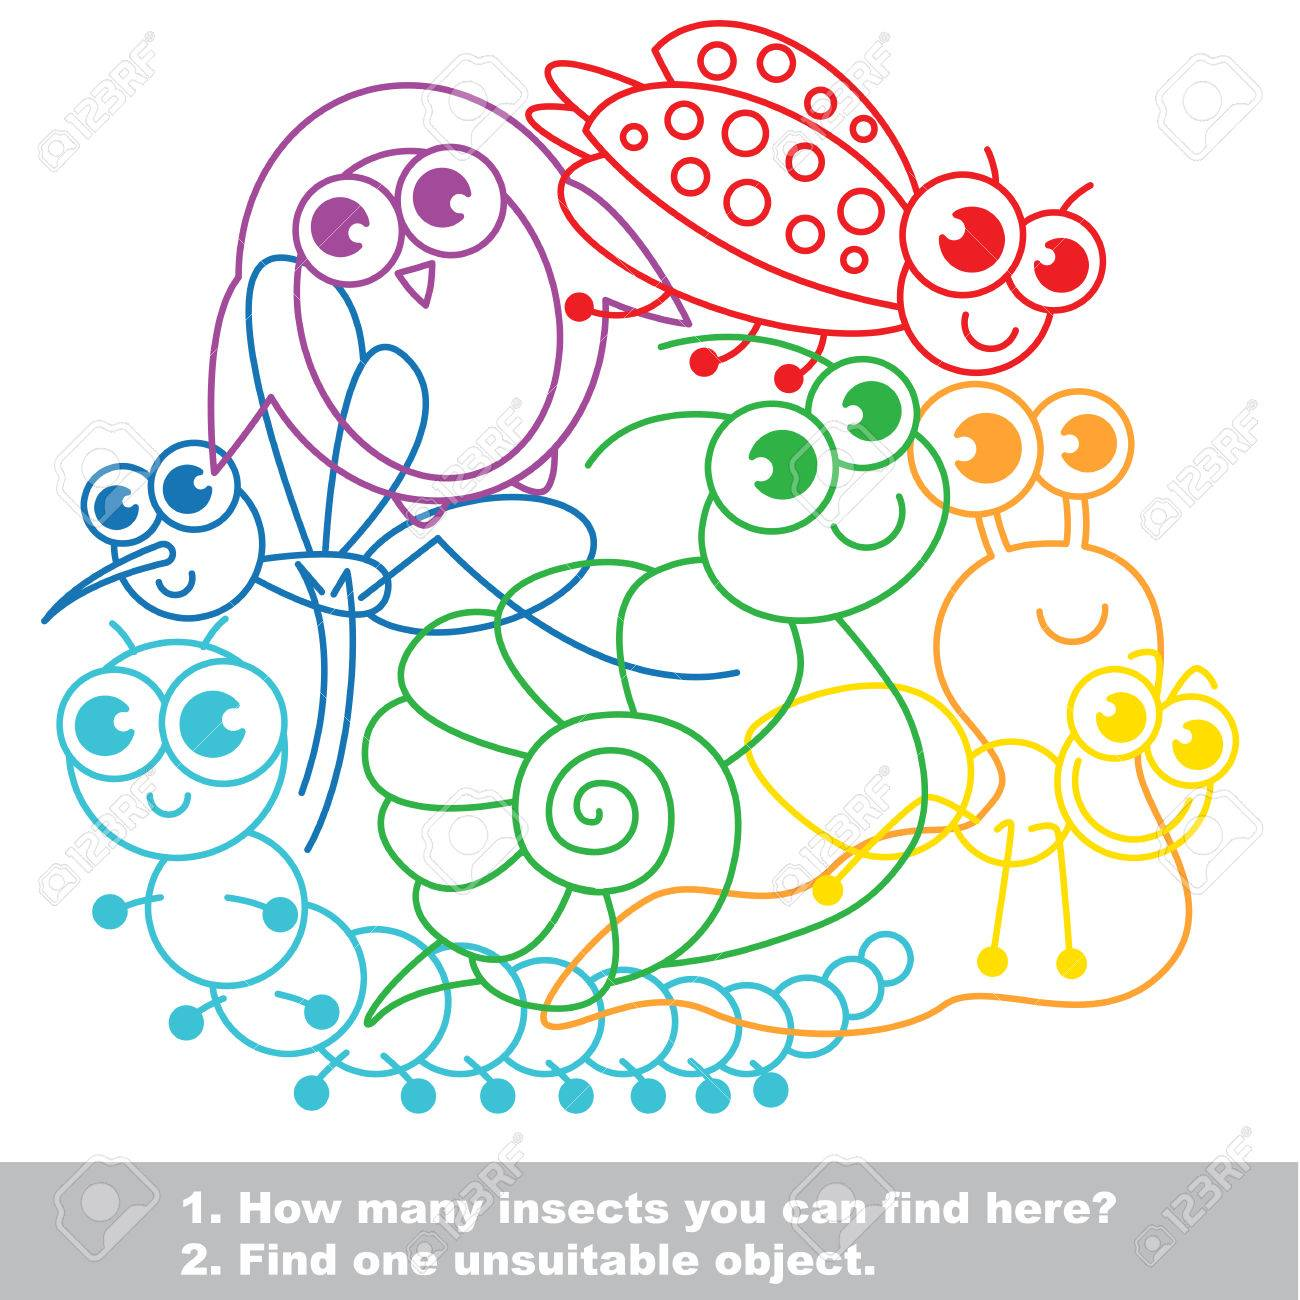 Cute Small Insects The Simple Mishmash Colorful Set In Vector